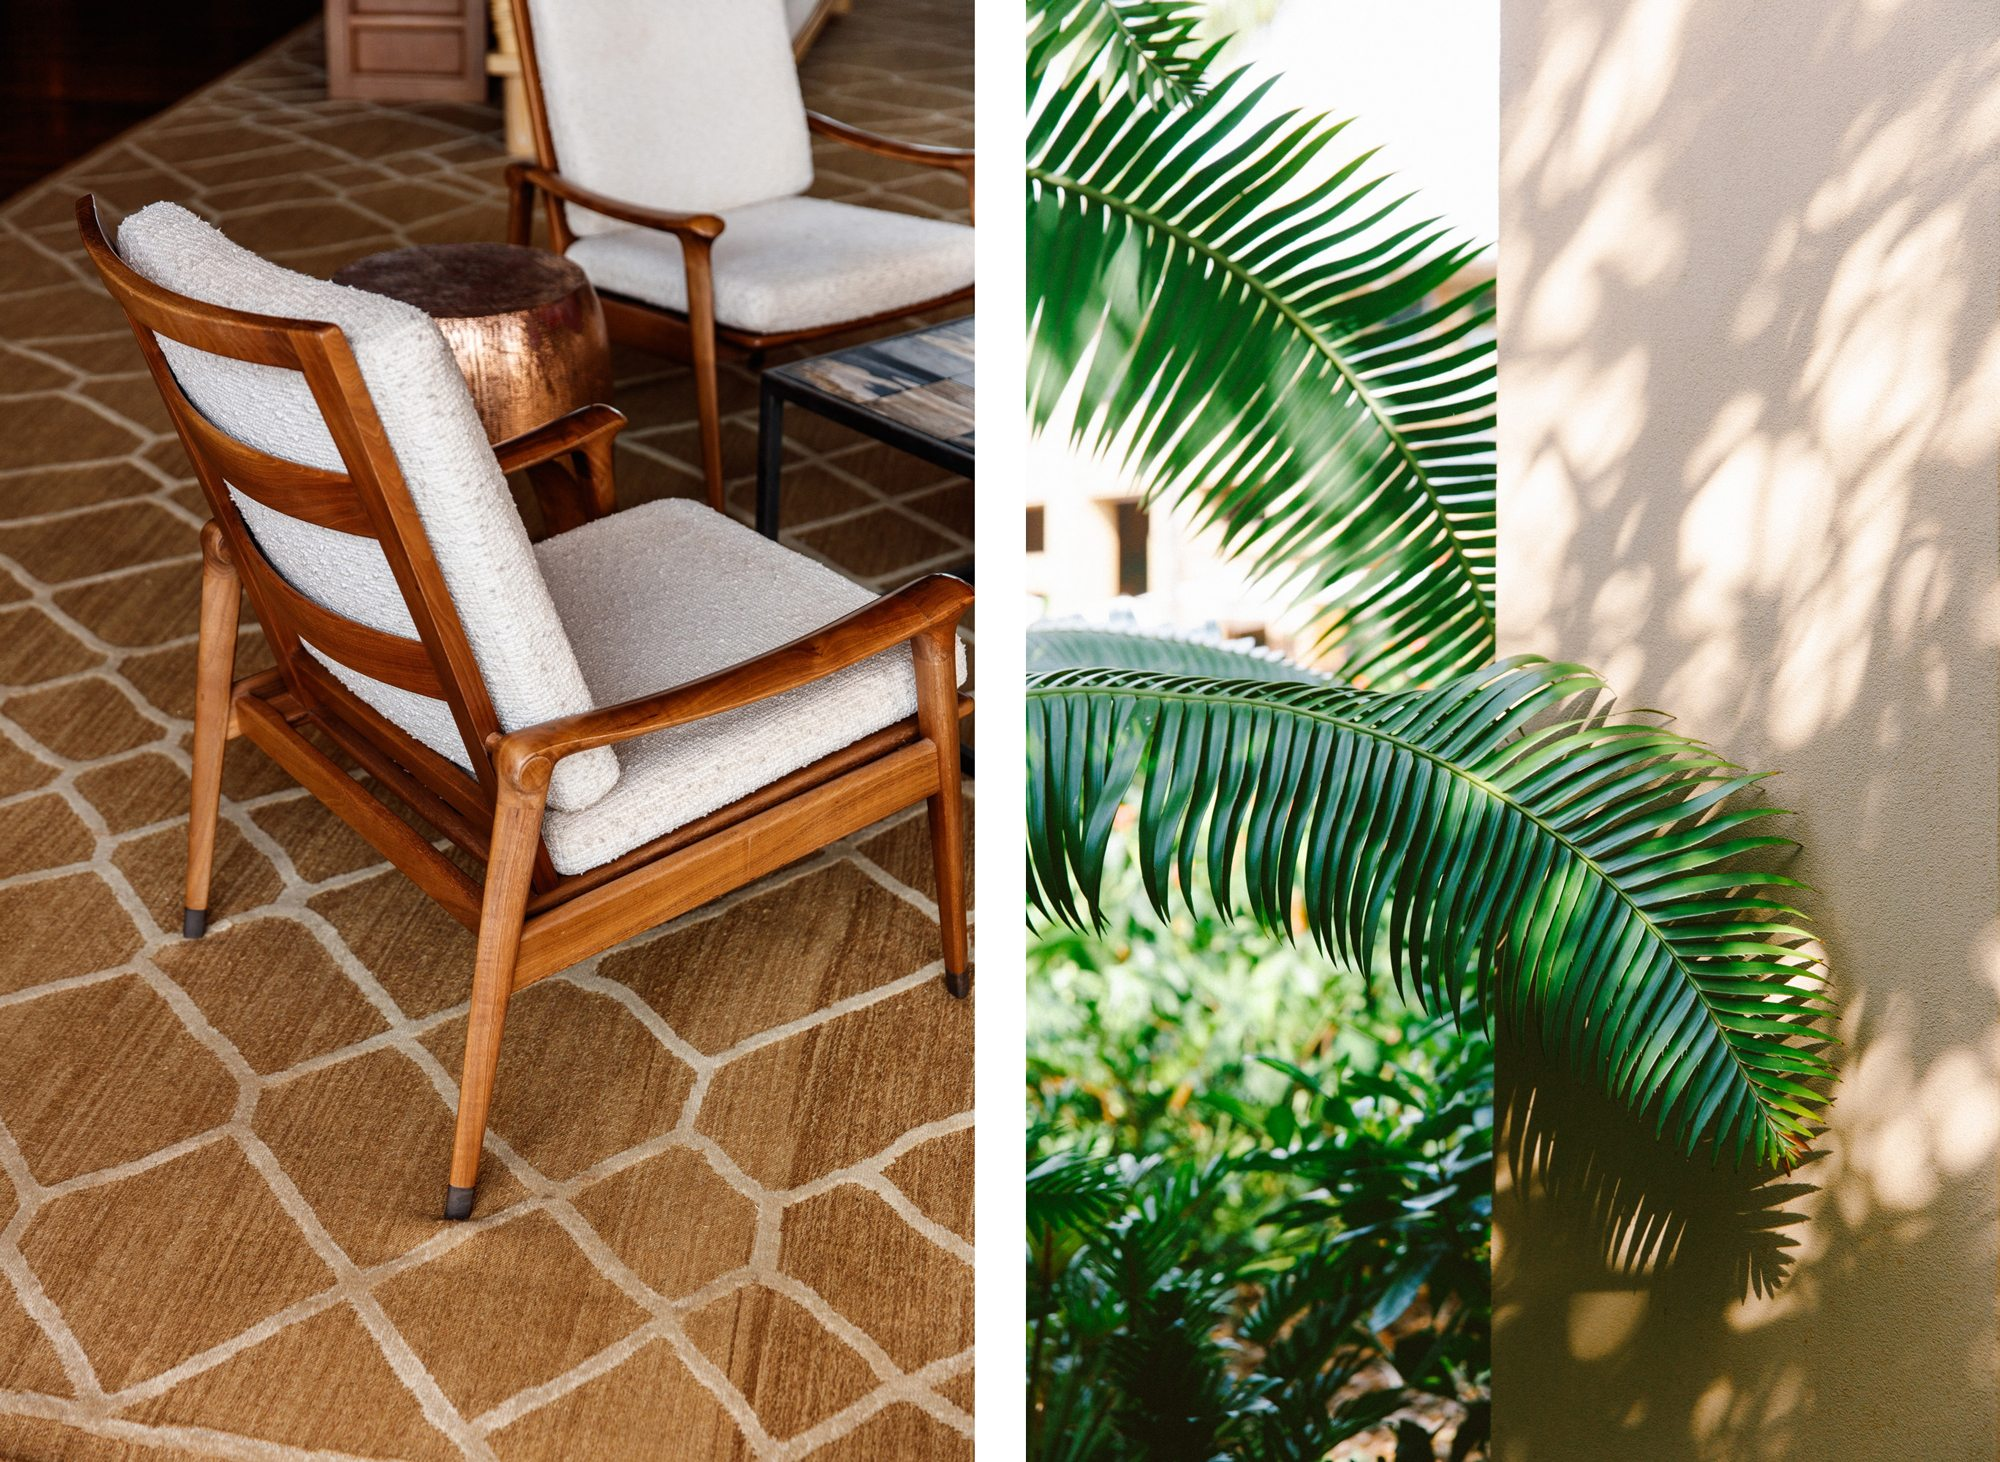 lanai white outdoor chair, palm frond comparison